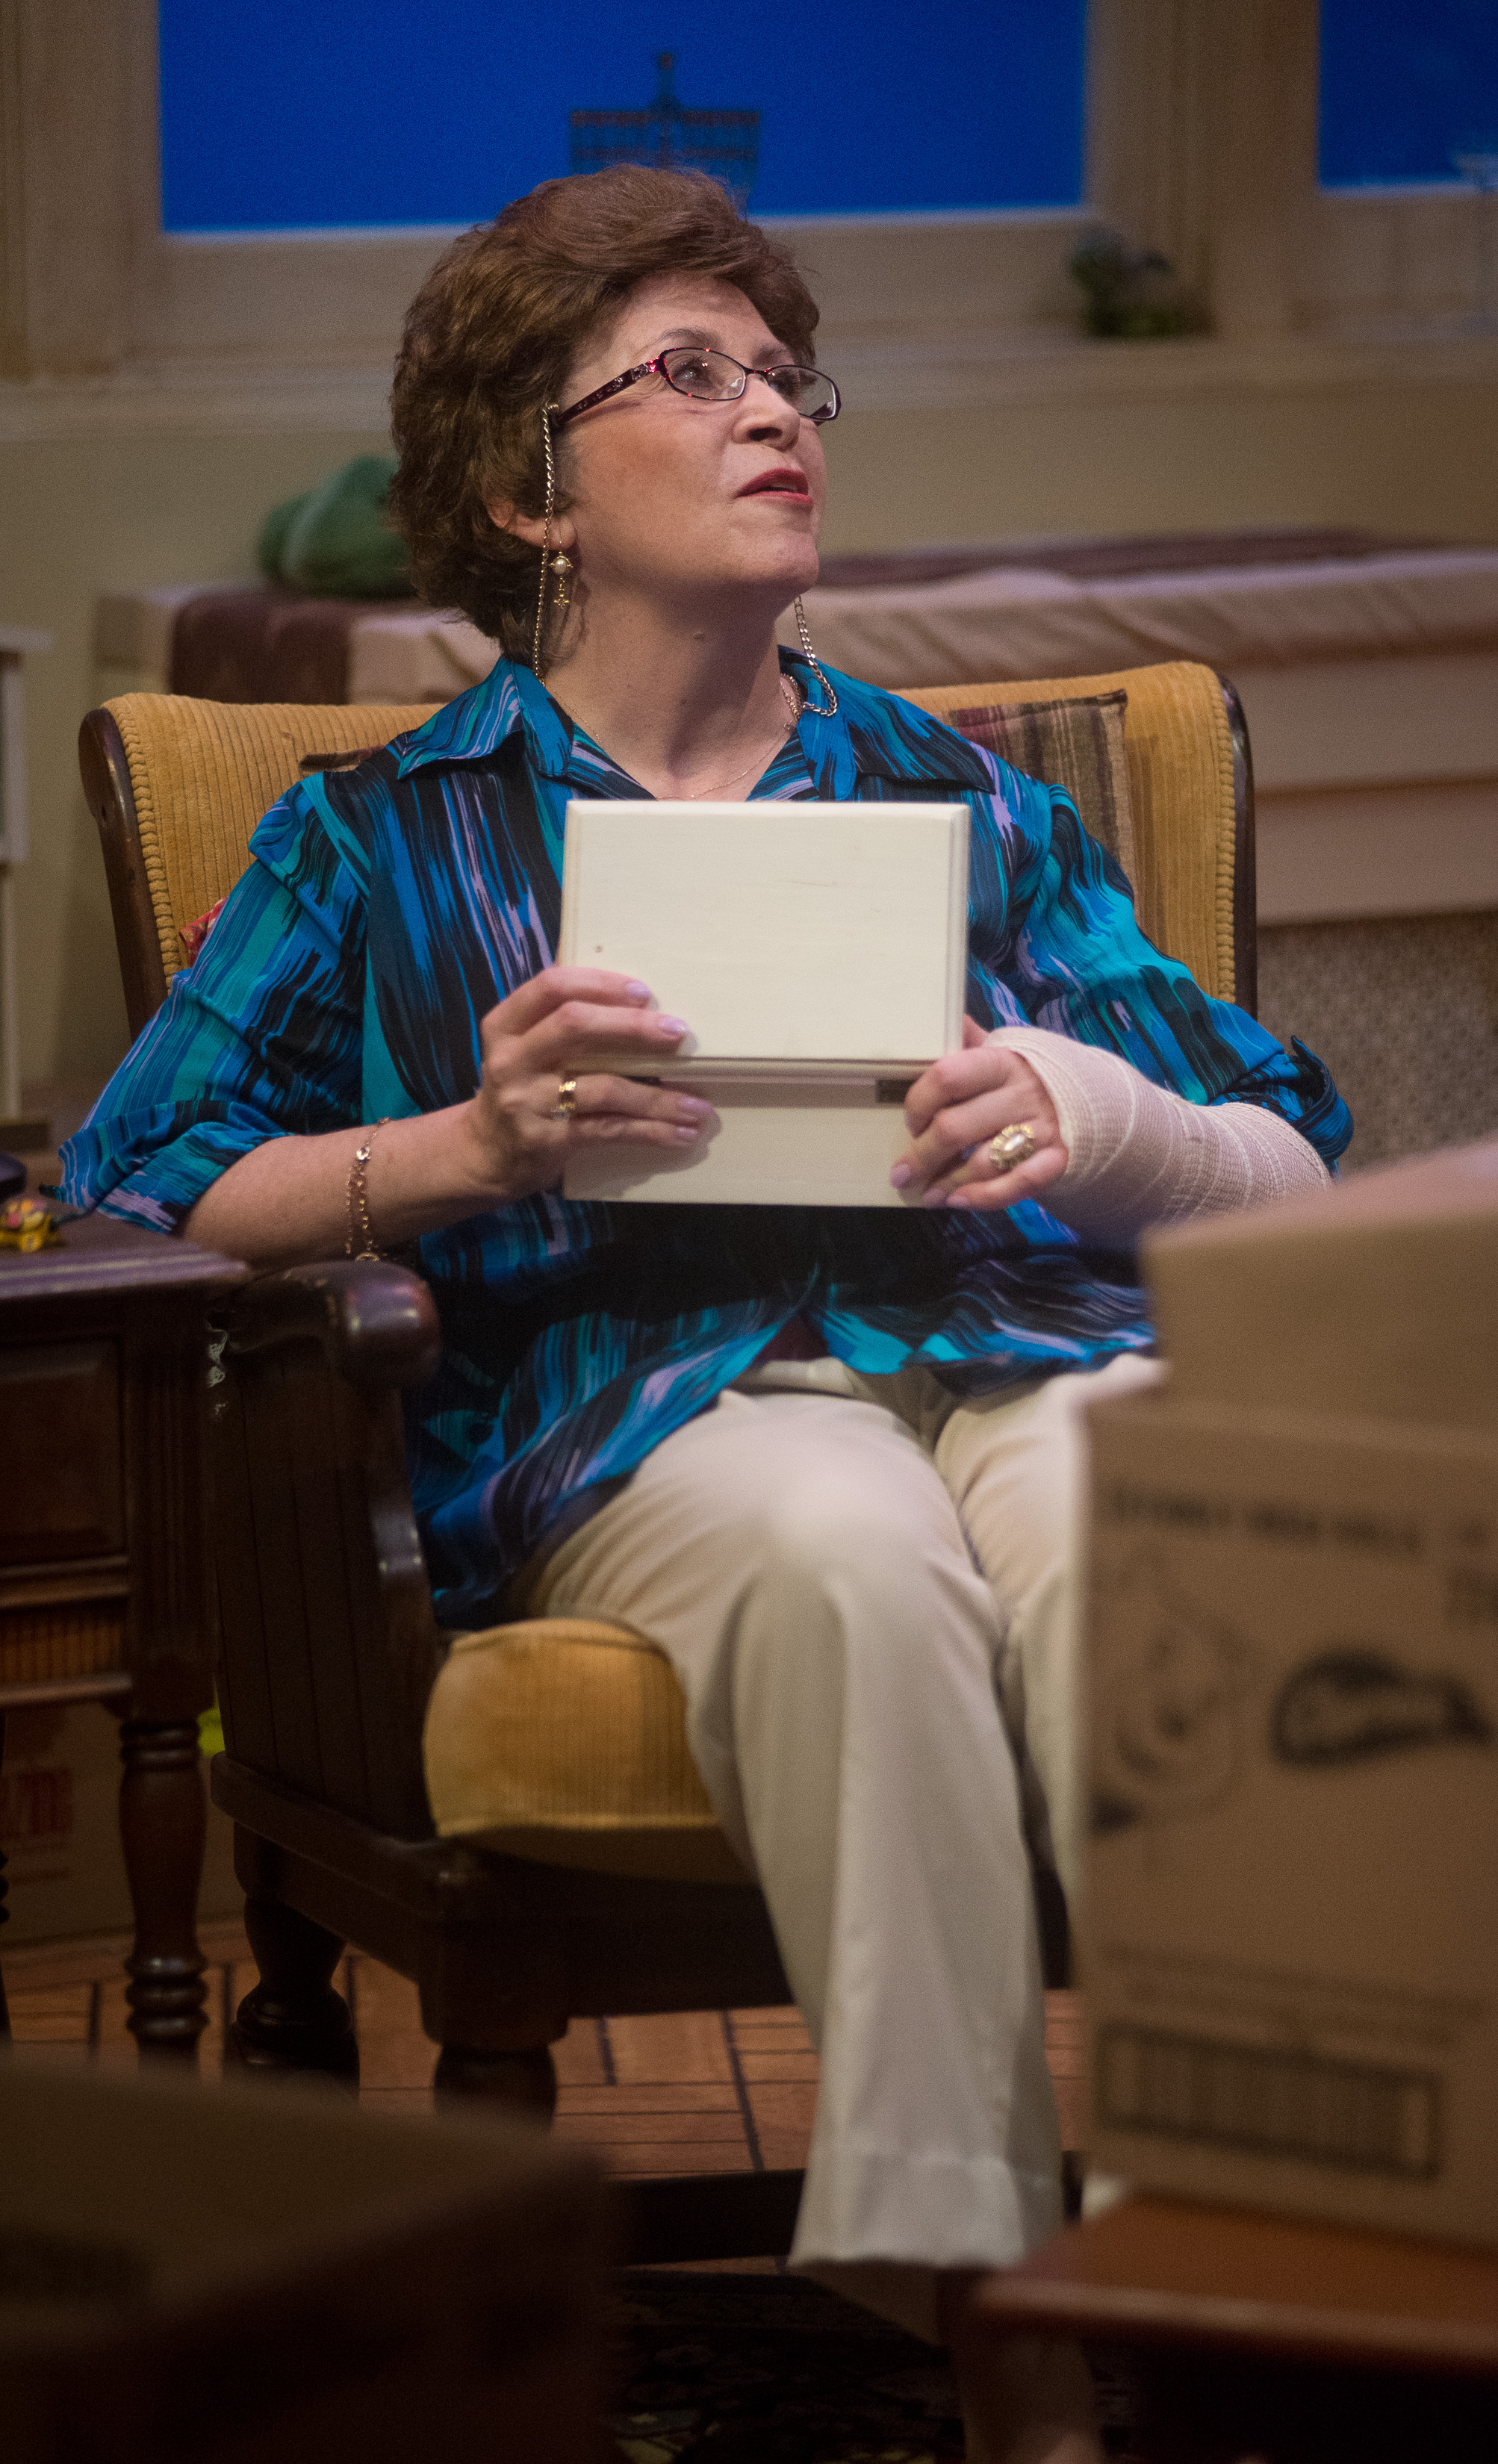 Maura O'Brien holds a music box to her chest remembering a childhood lullabye. photo courtesy of Robert Eddy